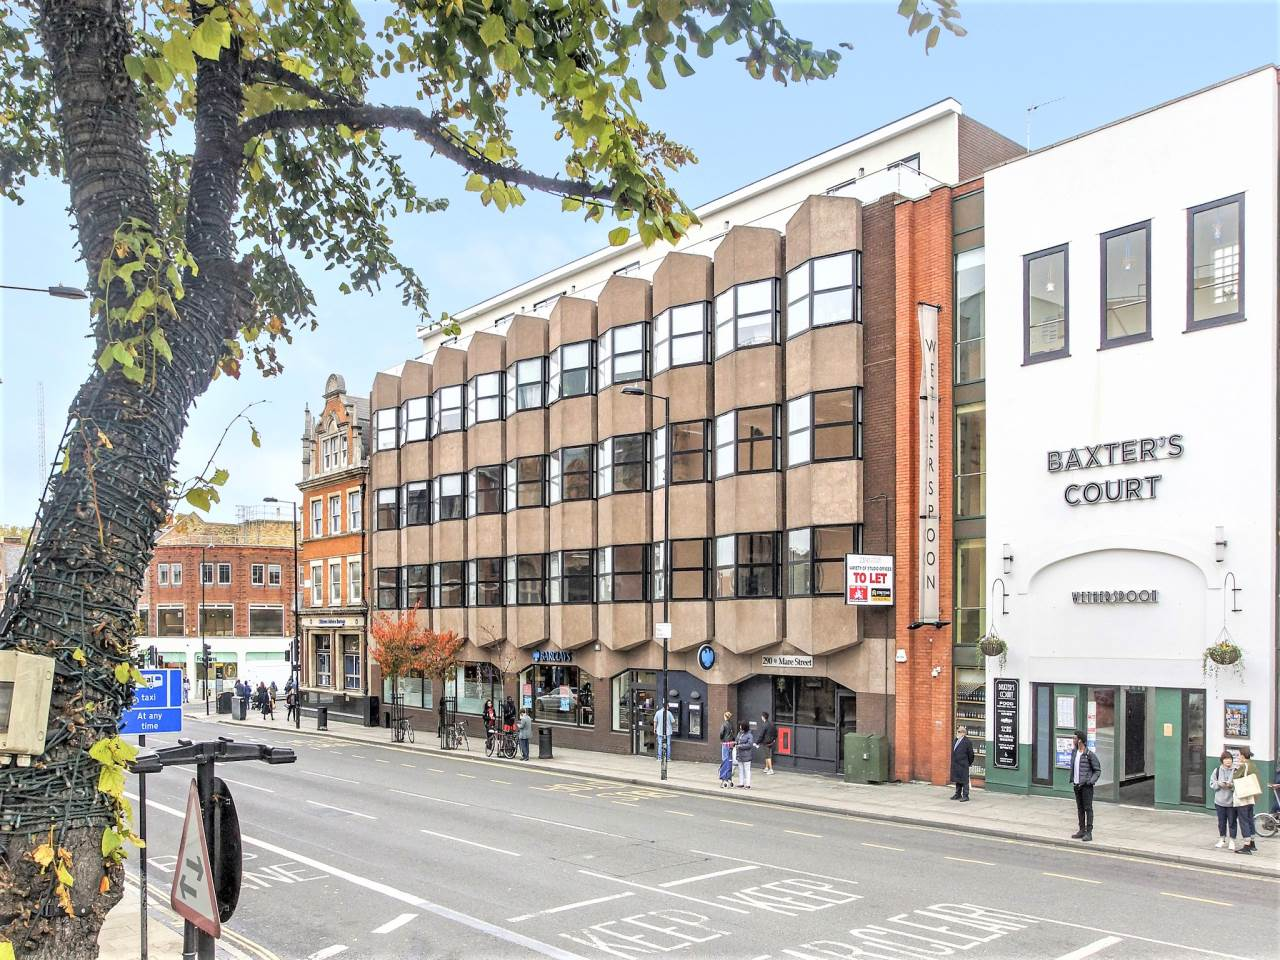 3 bed flat to rent in Hackney, E8